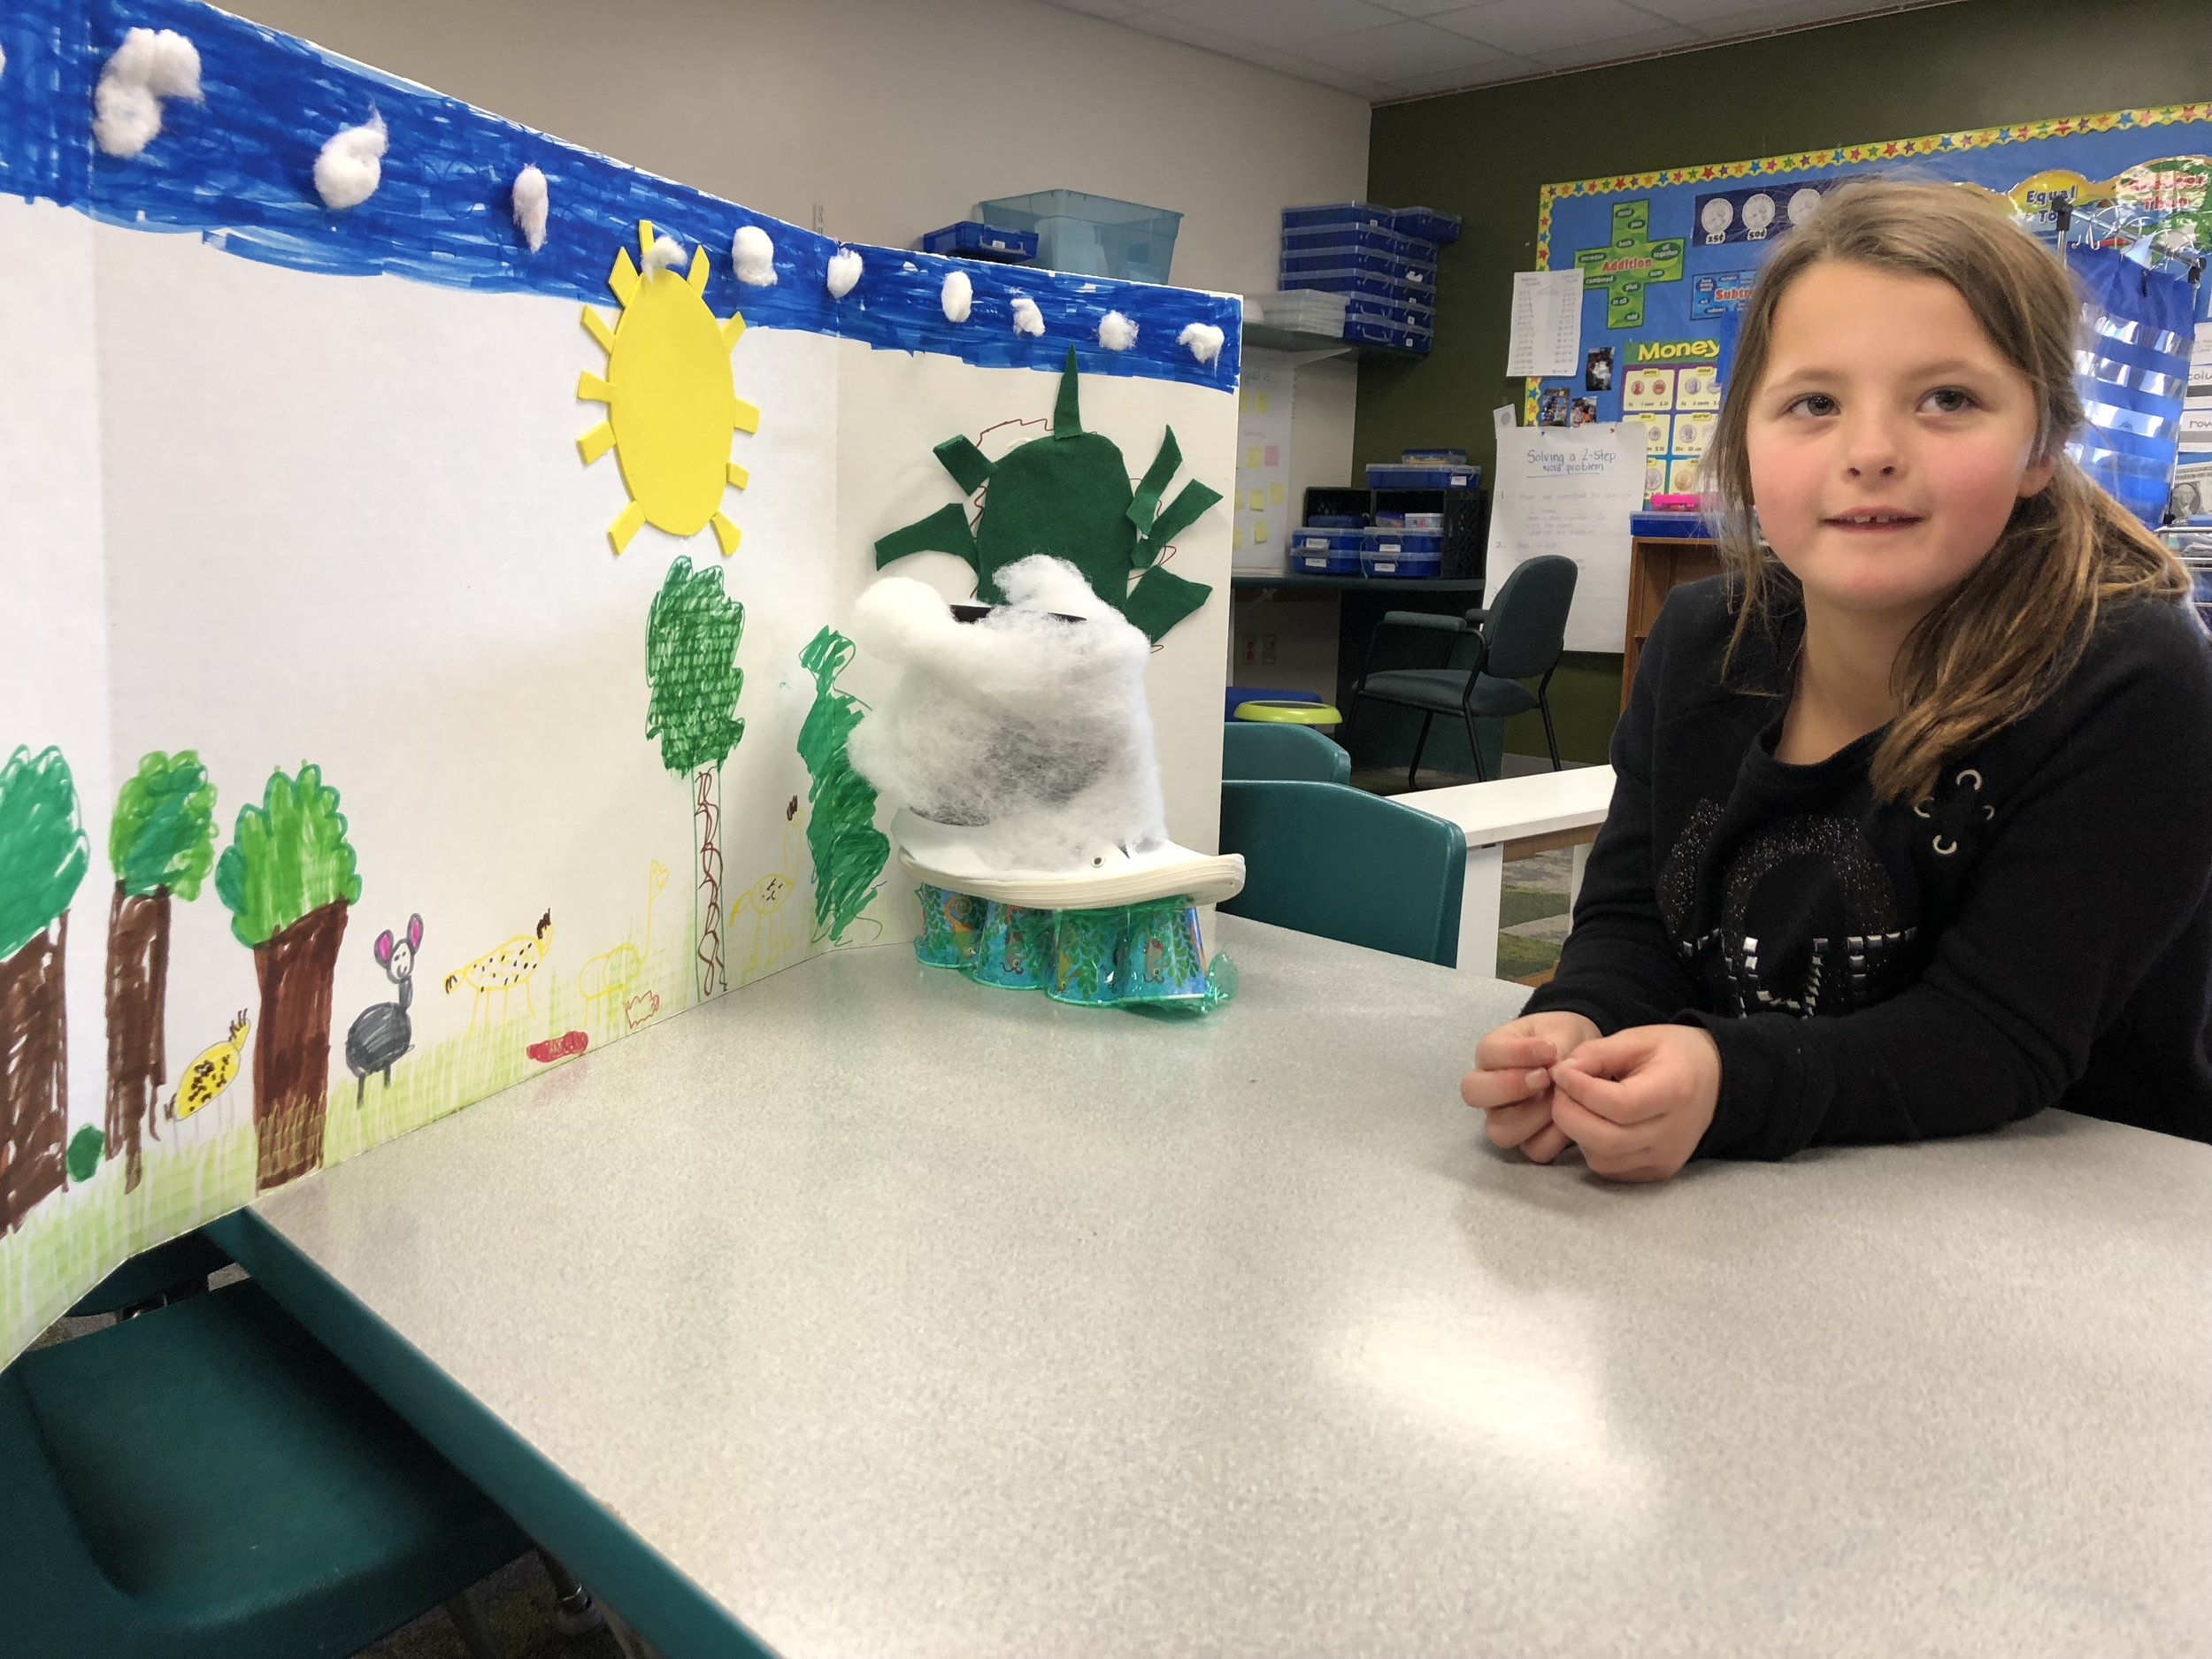 showing her project on the rainforest